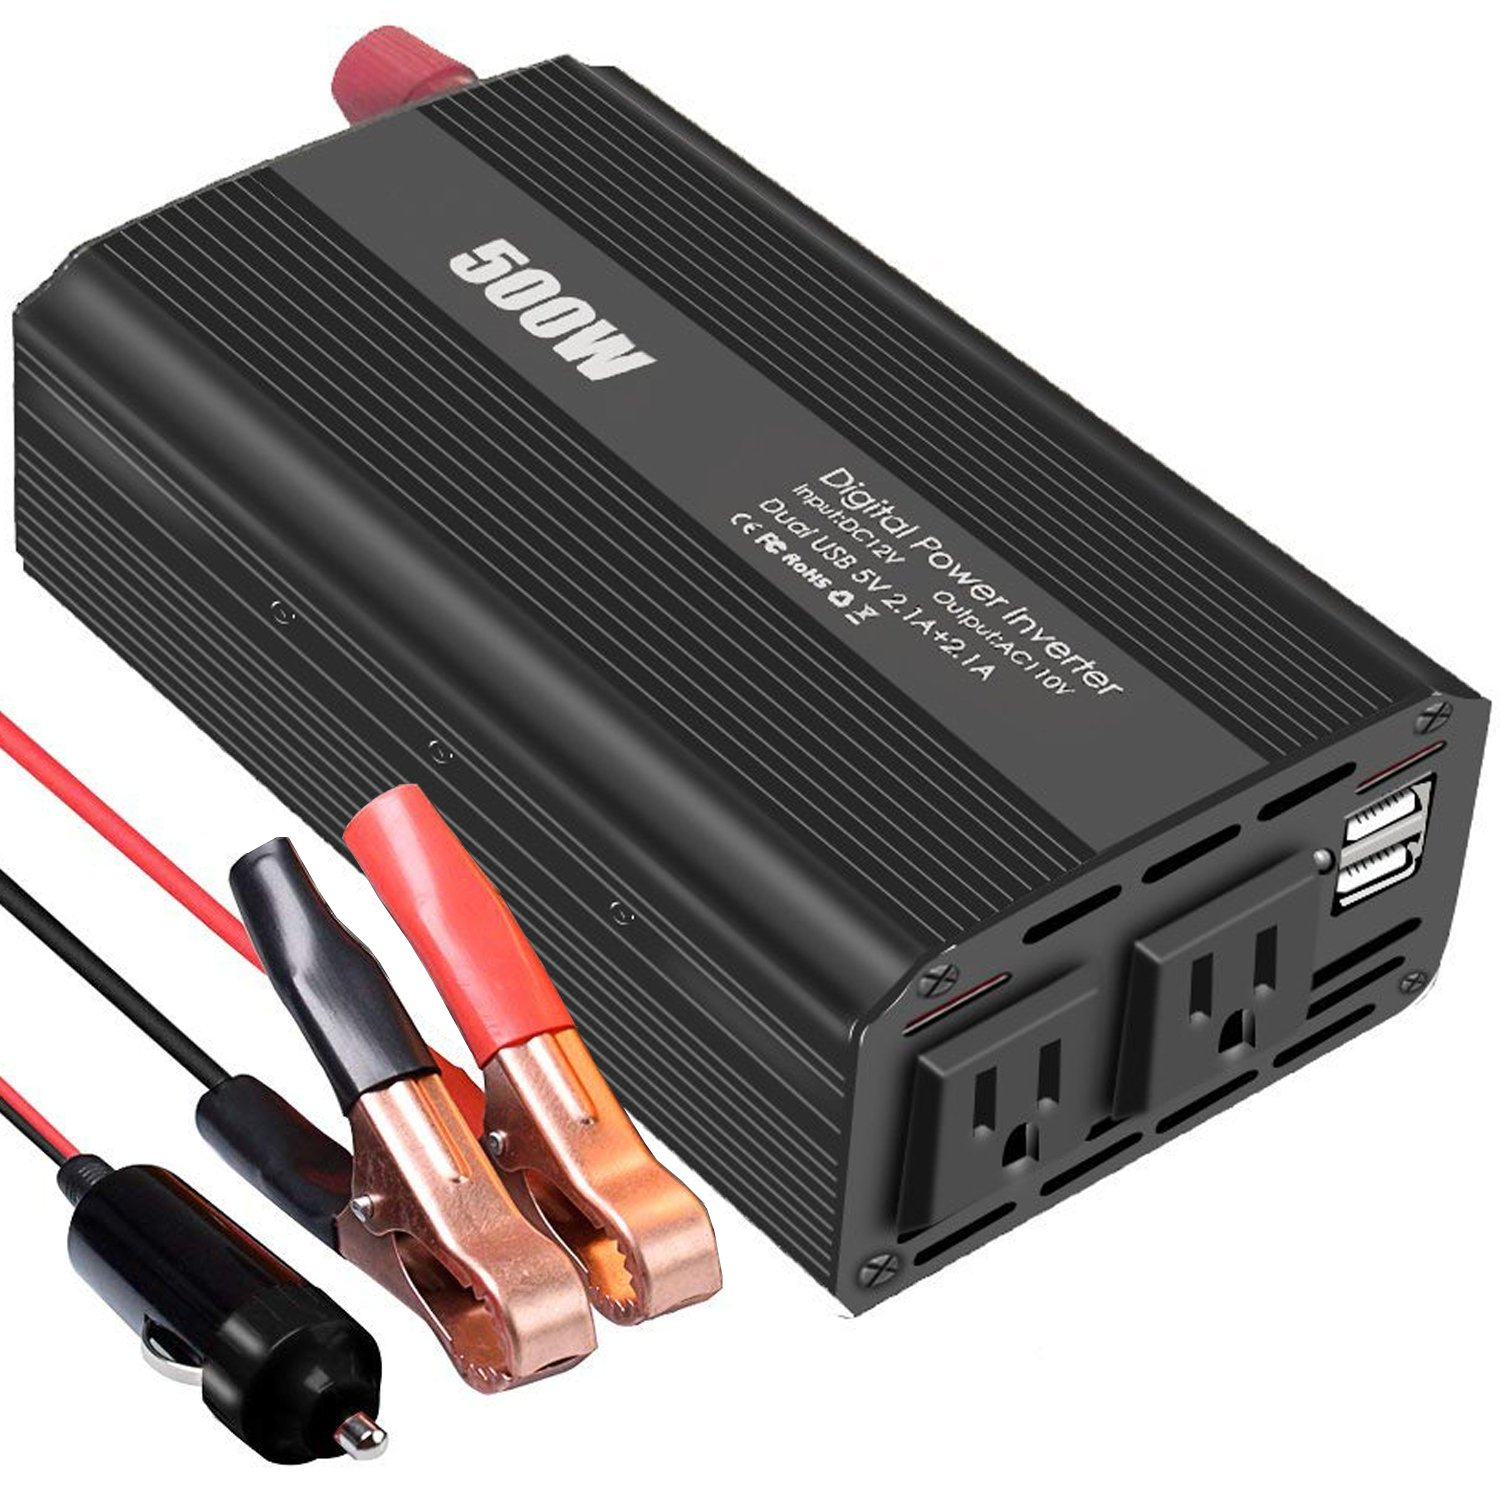 Power Inverter 500W DC 12V to AC 110V Converter with 4.2A Dual USB Charging Ports and 2 AC Outlets for Smartphones, Tablets, Laptops, Nebulizer